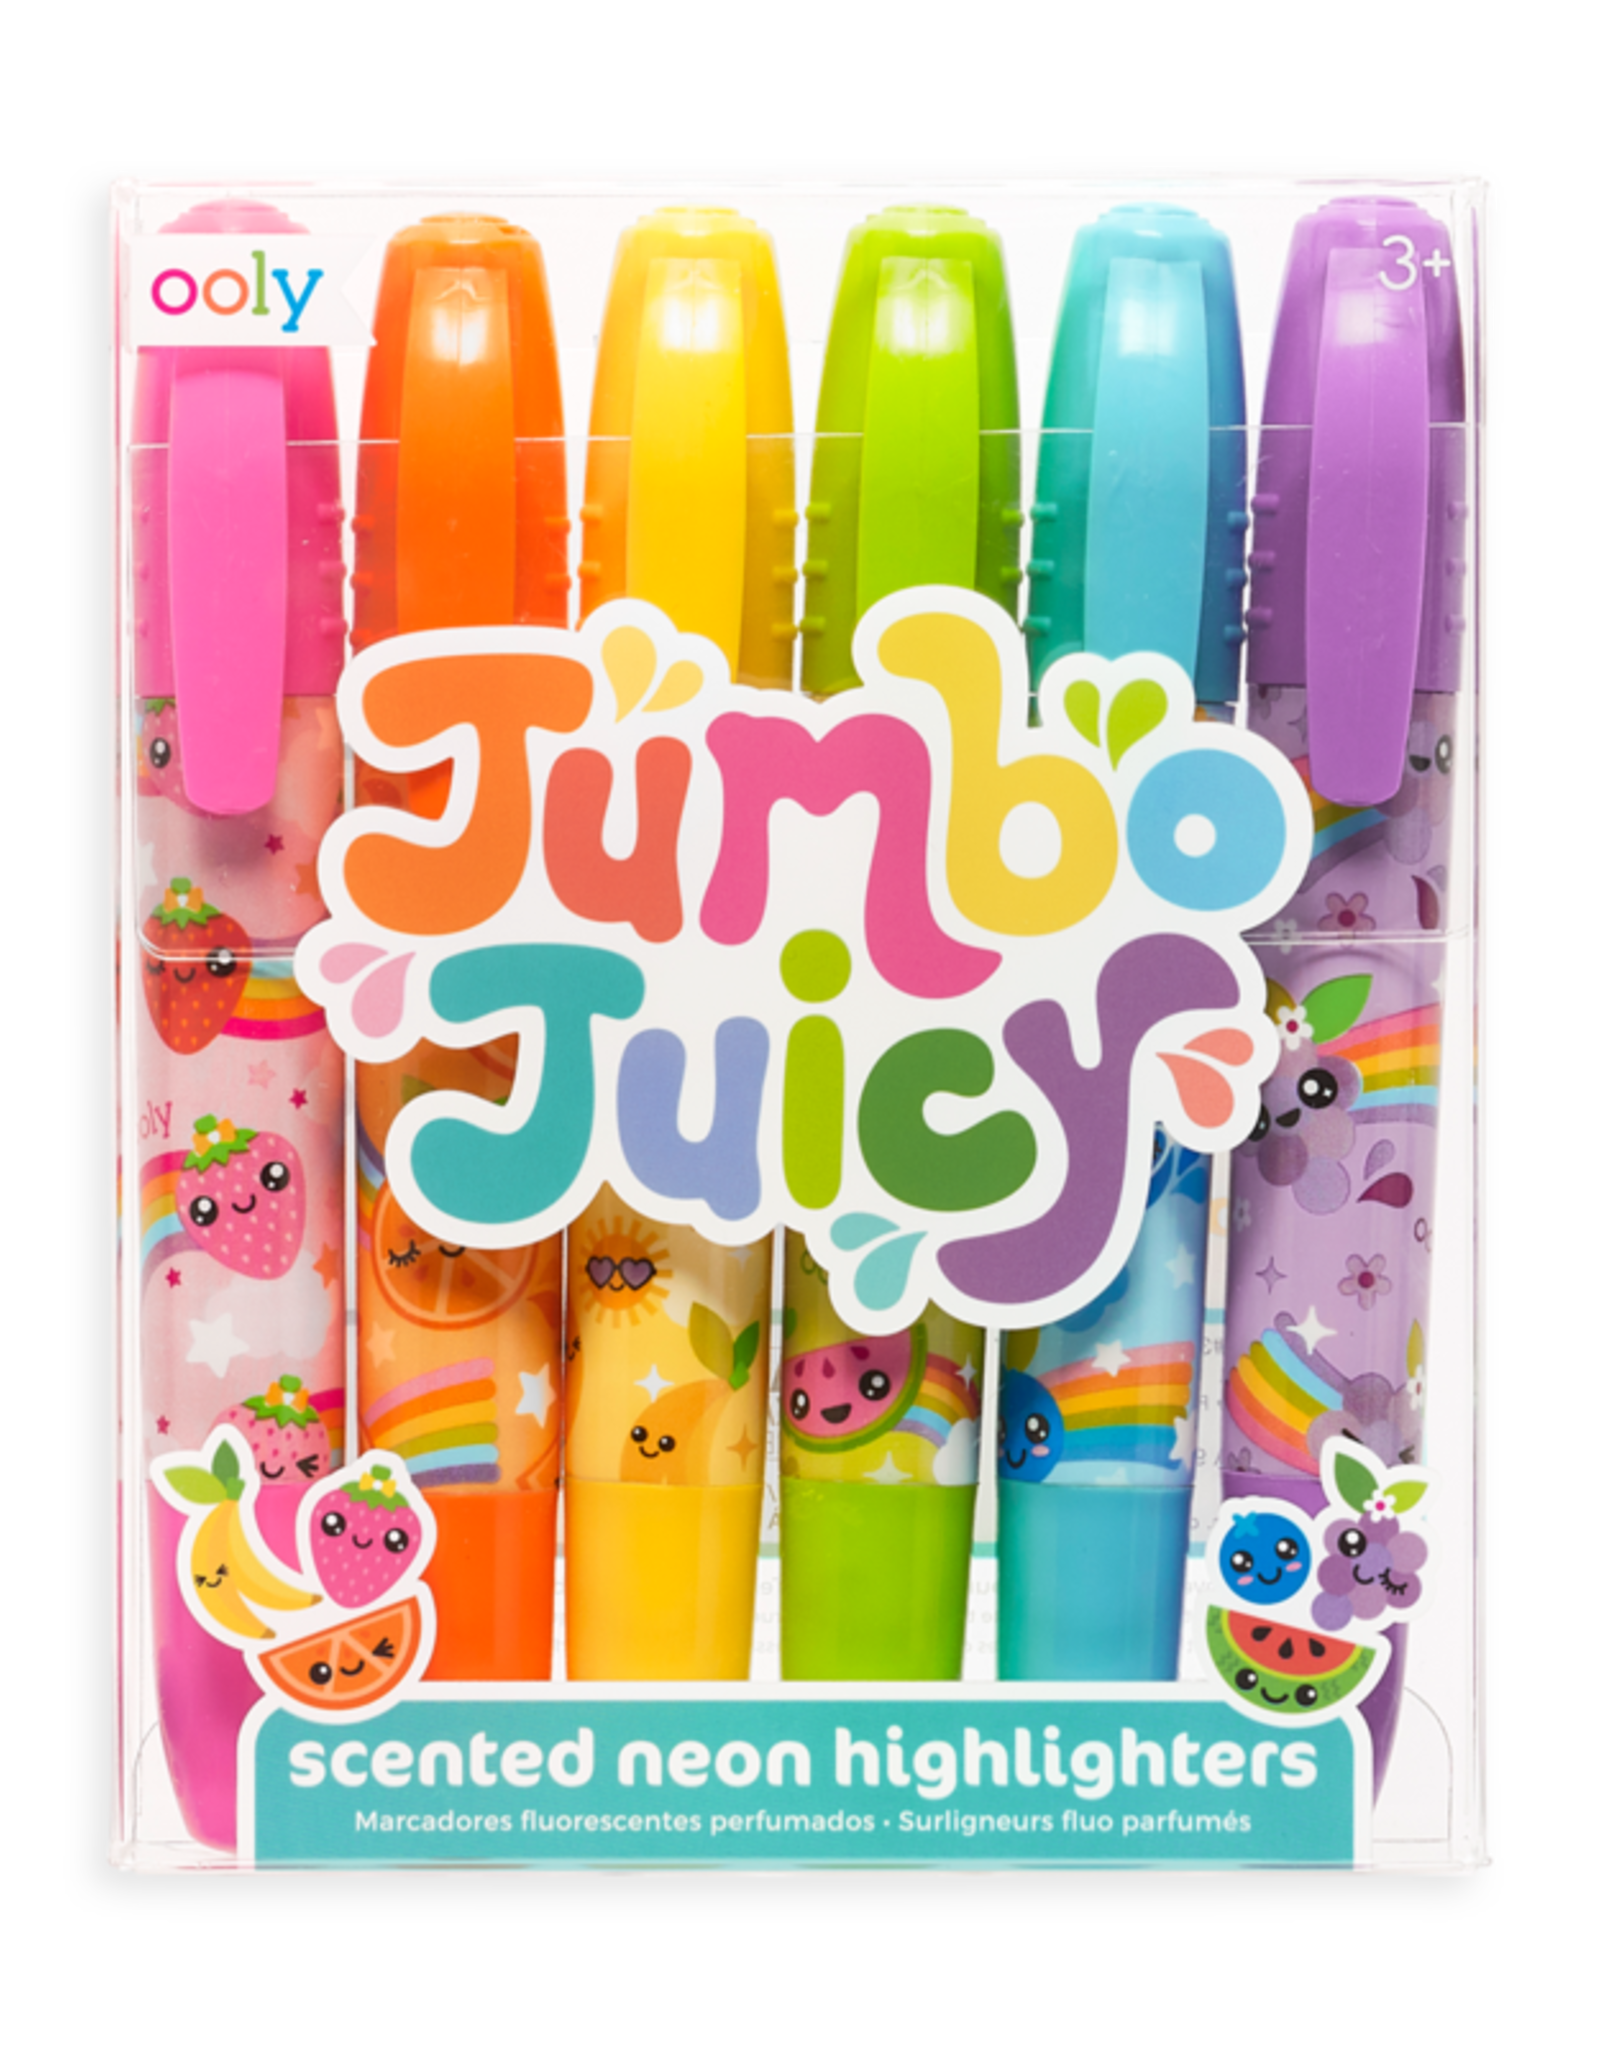 OOLY JUMBO JUICY SCENTED HIGHLIGHTERS - SET OF 6